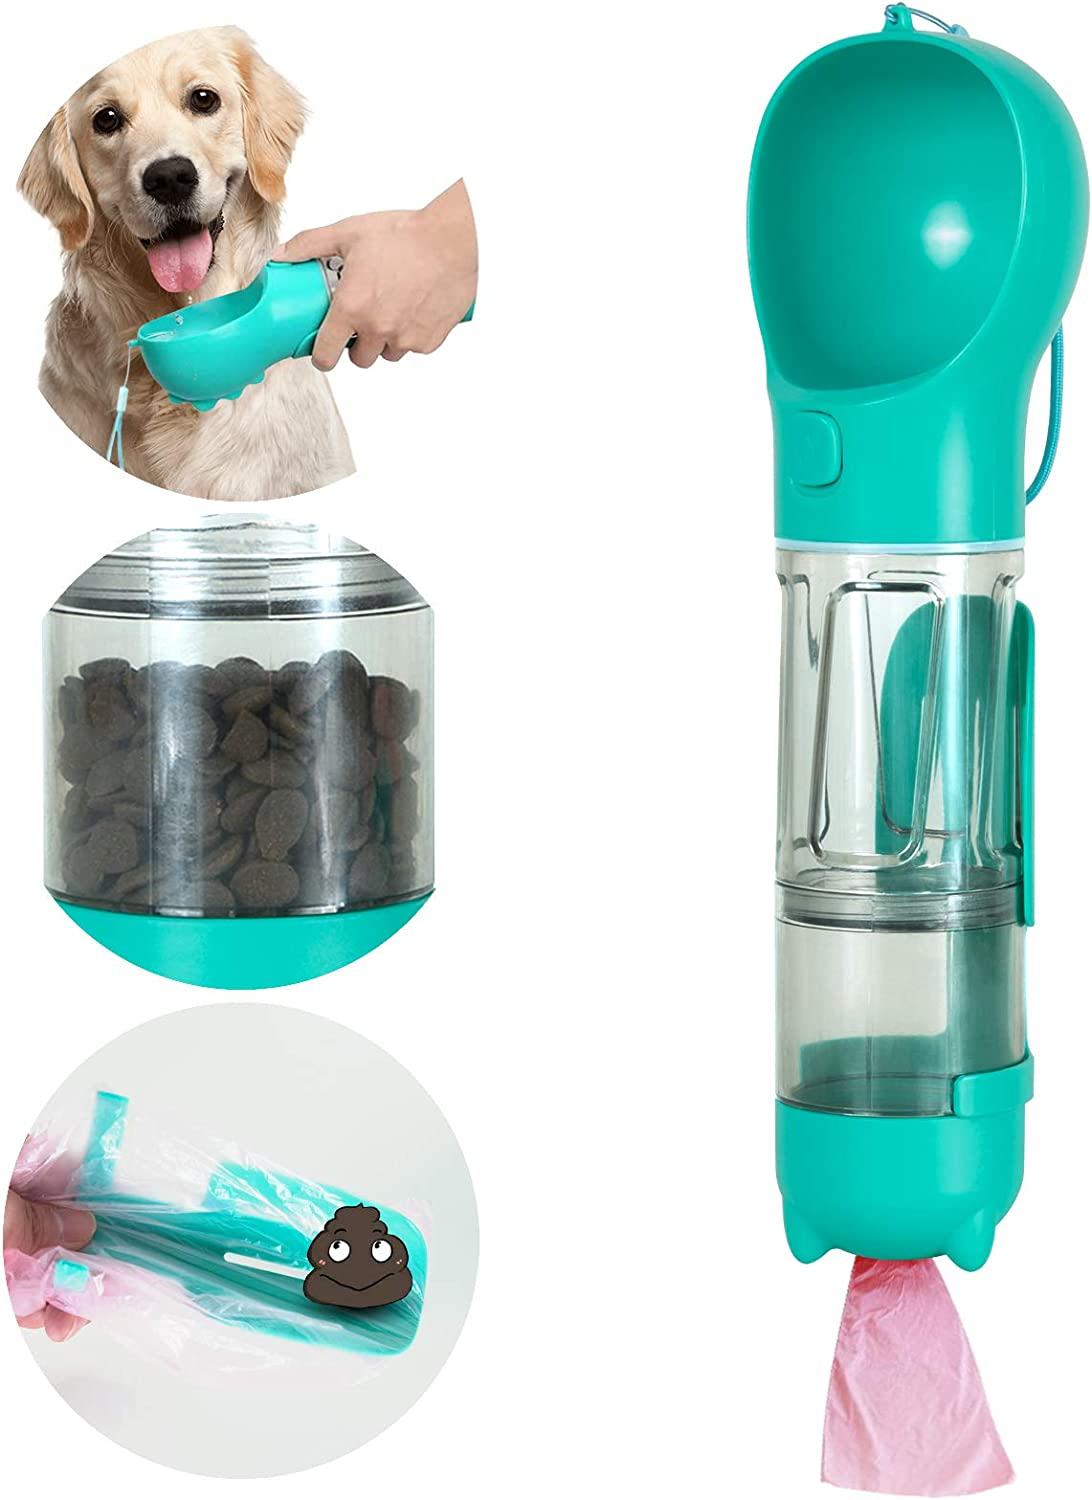 N / A Multifunctional and Portable Dog Water Bottle for Walking,Dog Travel Water Bottle,Portable Dog Water Bottle,Dog Travel Water Dispenser with Food Container, by Right+Left